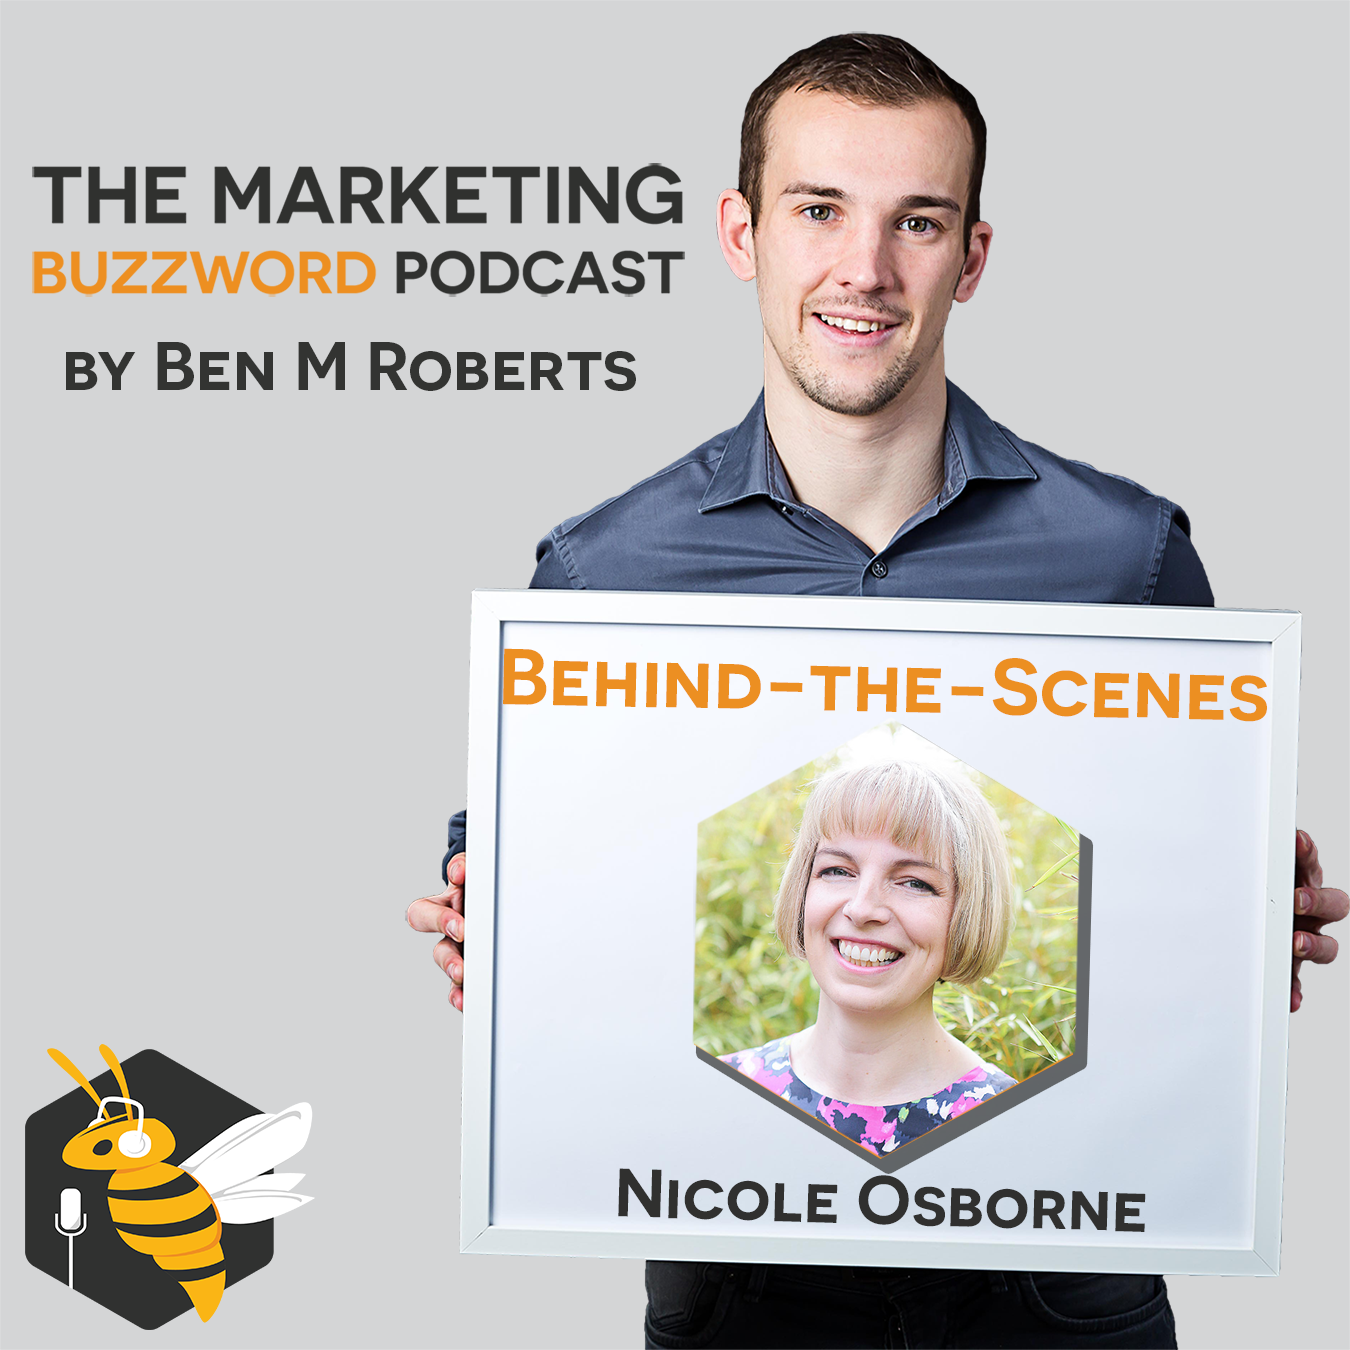 Behind-the-Scenes Content - Does behind-the-scenes content boost sales? How can you make it interesting? Do people really want to see your unfinished/raw work?